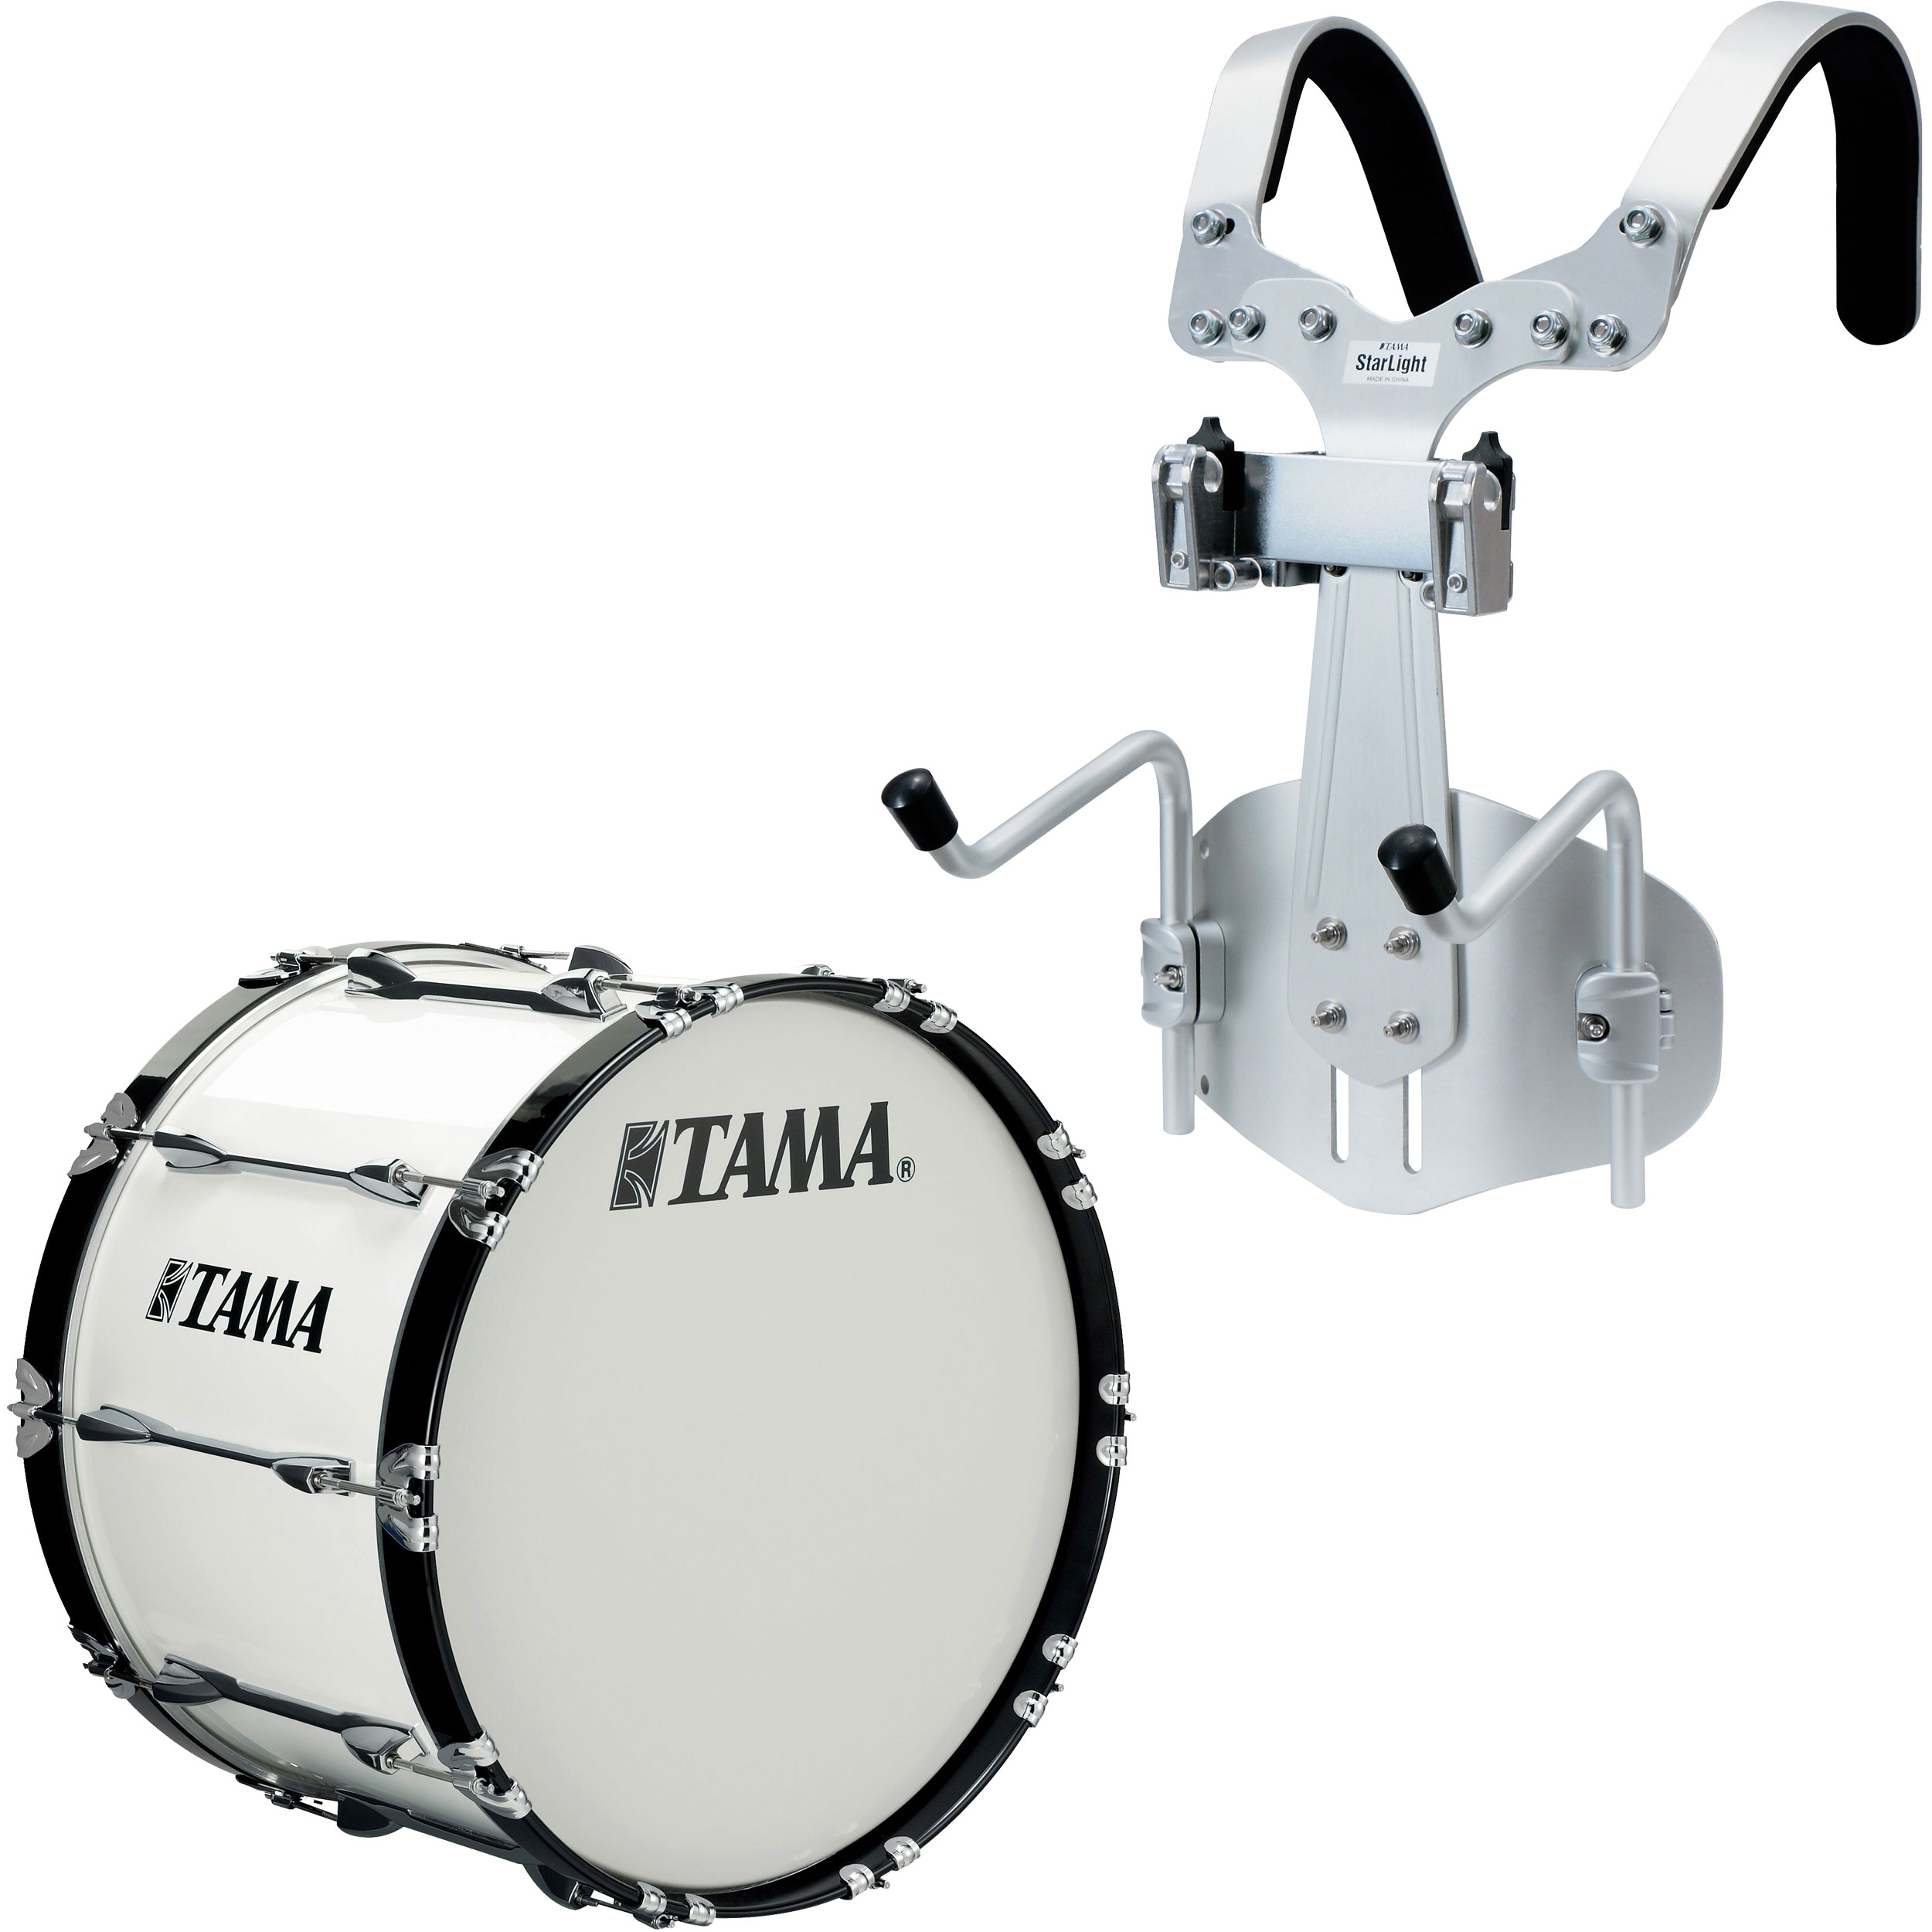 "Tama 24"" StarLight Marching Bass Drum in Sugar White Wrap with Carrier"